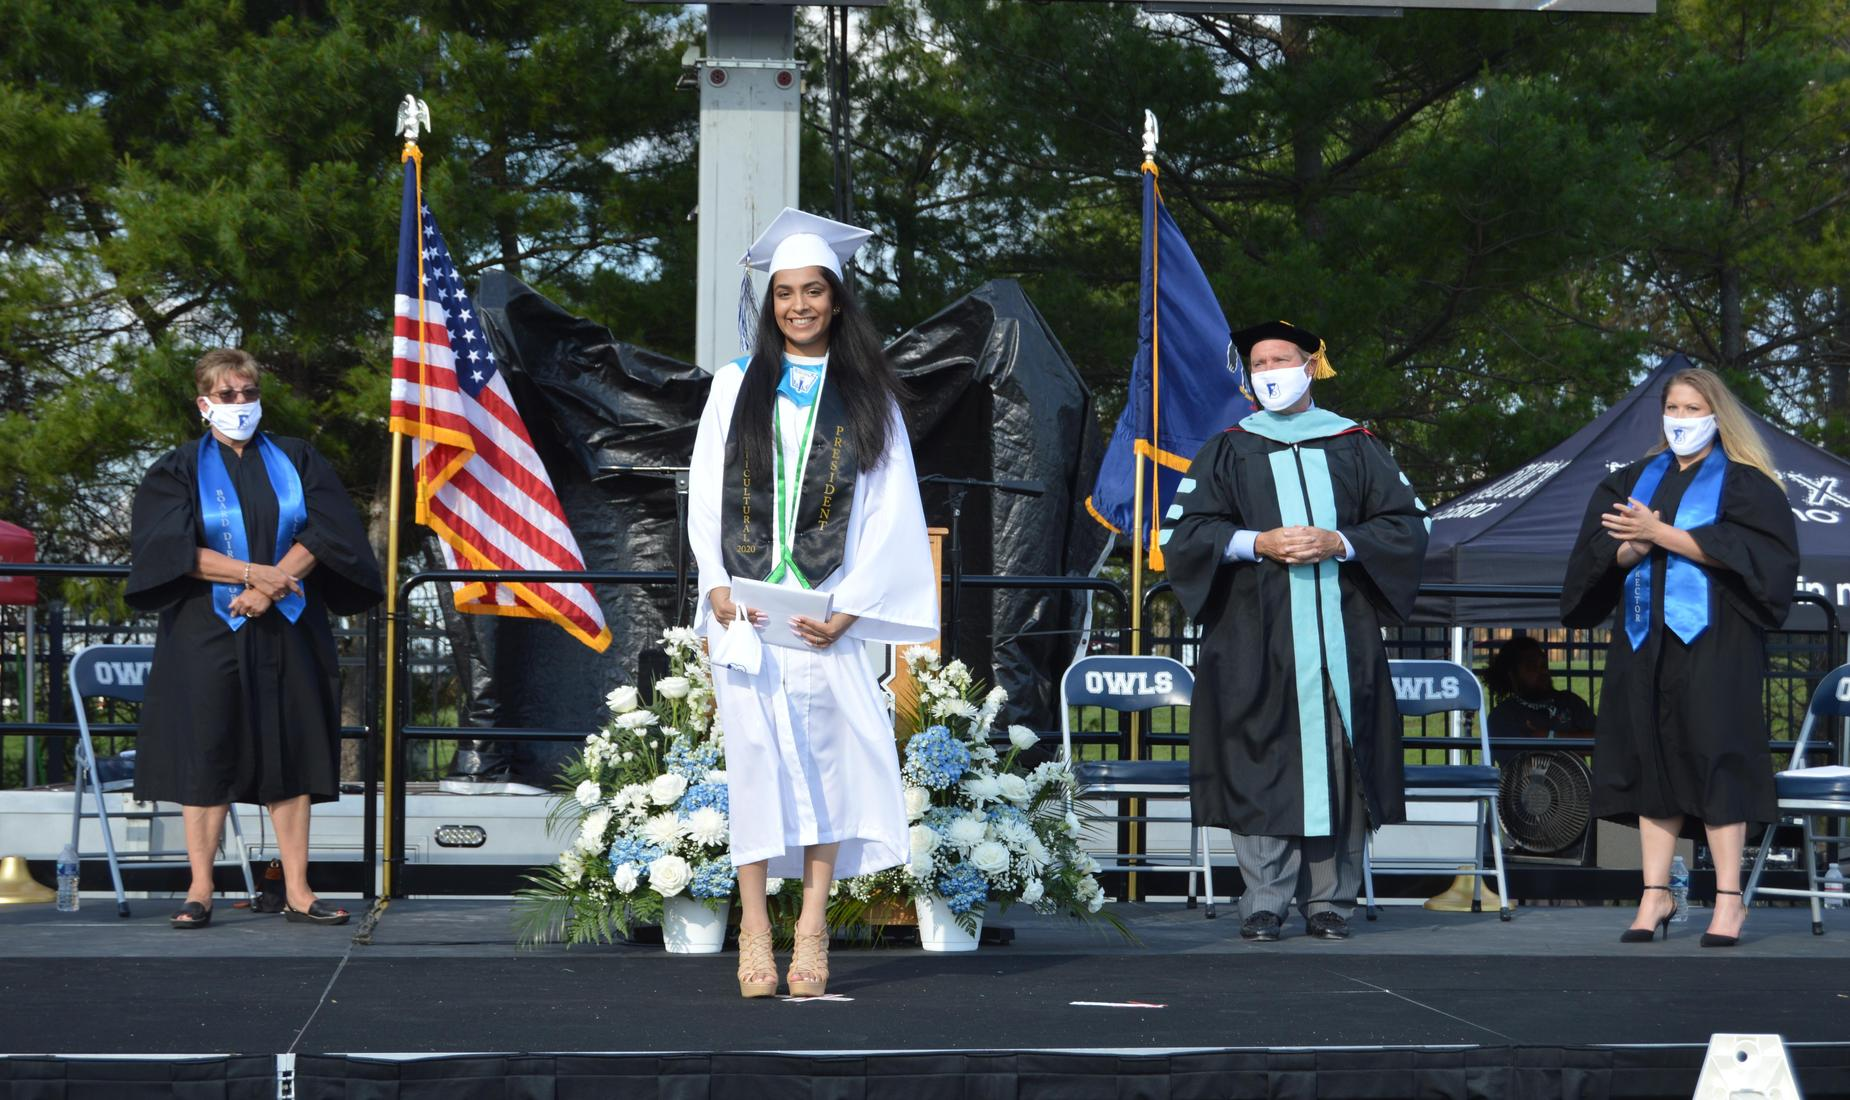 Multicultural club president wearing her black sash posed with her diploma dressed in her white cap and gown